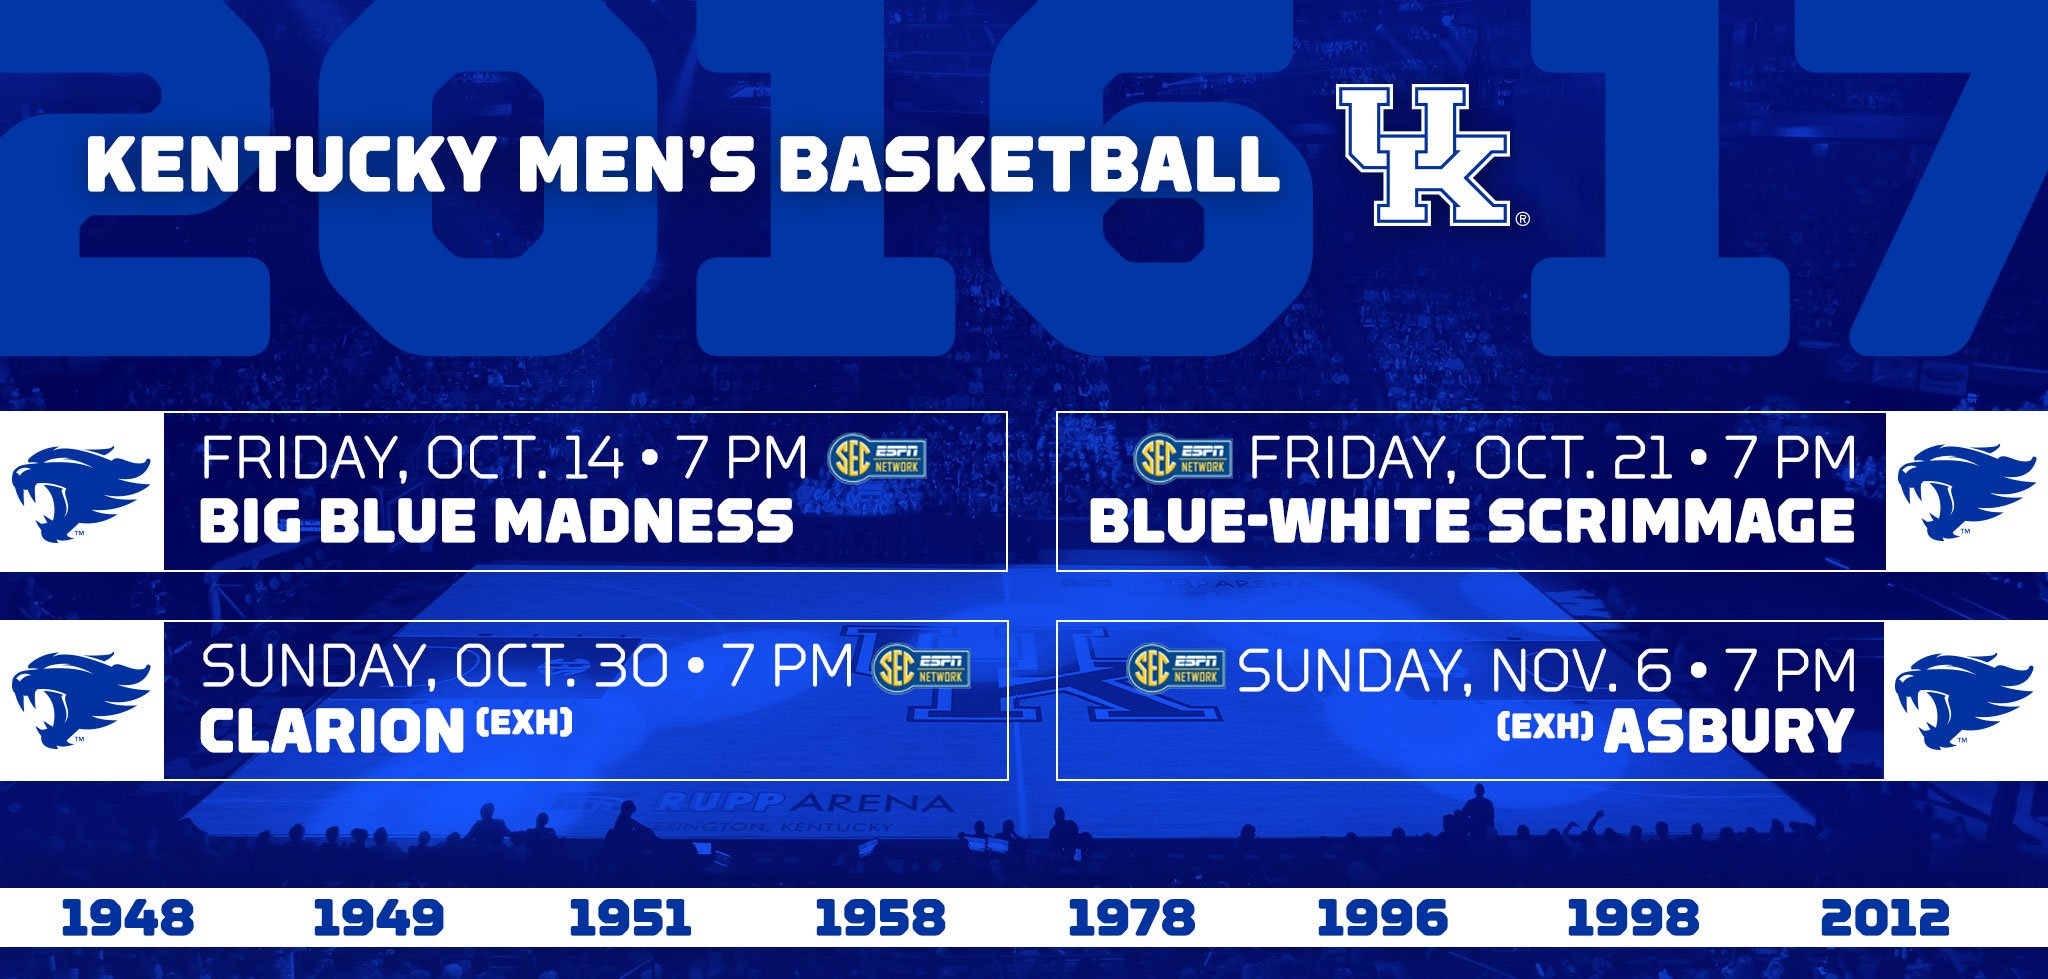 UK Announces Big Blue Madness And This Year's Exhibition